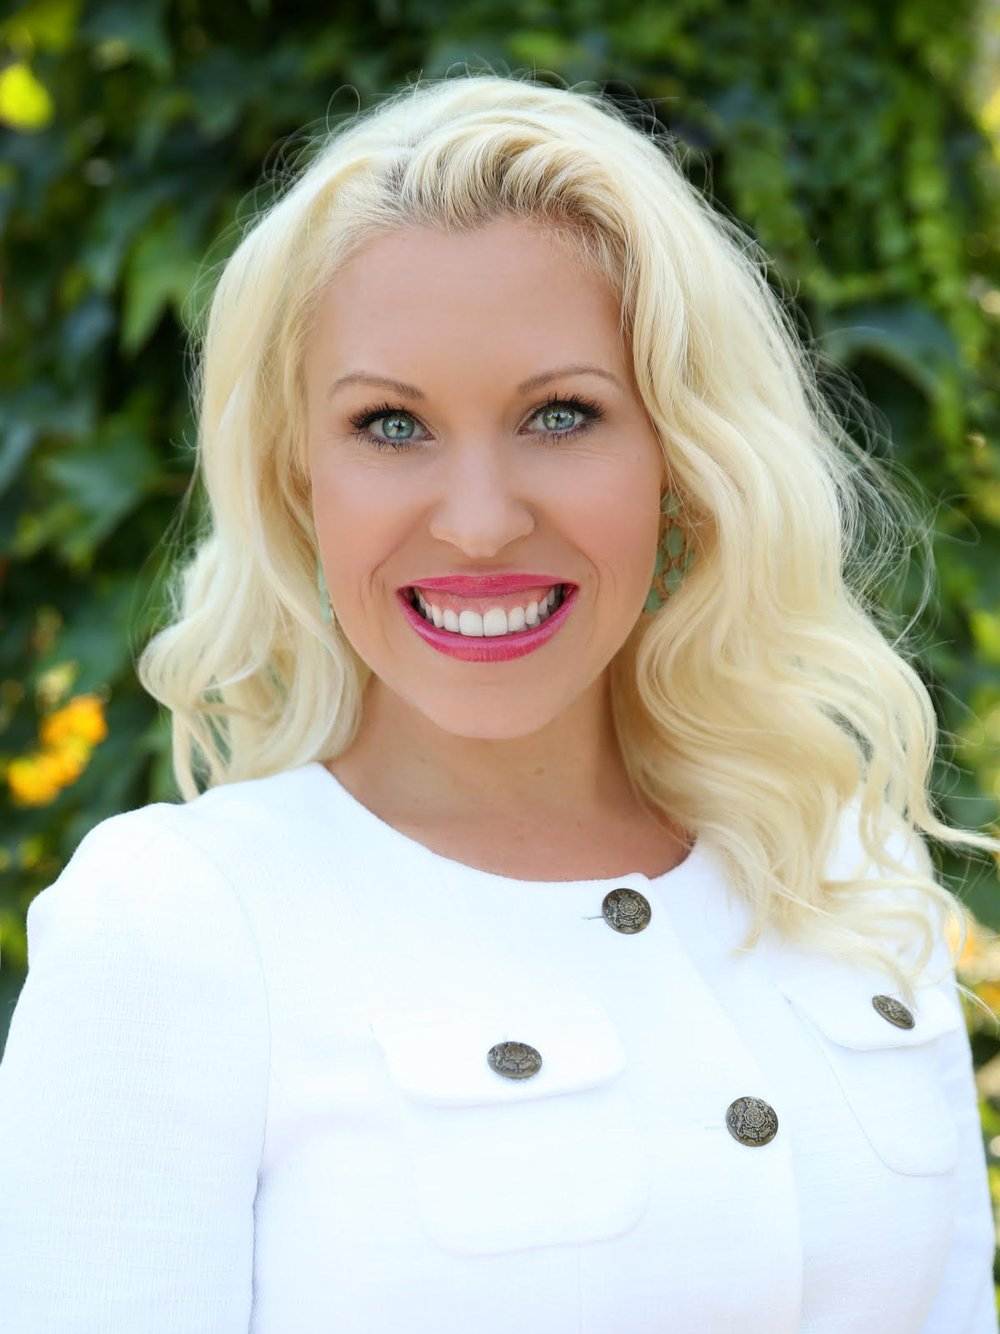 Jolene Messmer - Loan Consultant425-445-1945Jolene.Messmer@CaliberHomeLoans.comAnalyzes your financial objectives, educates you on the loan process, structures and shares all loan options available, and oversees the entire loan process with the team